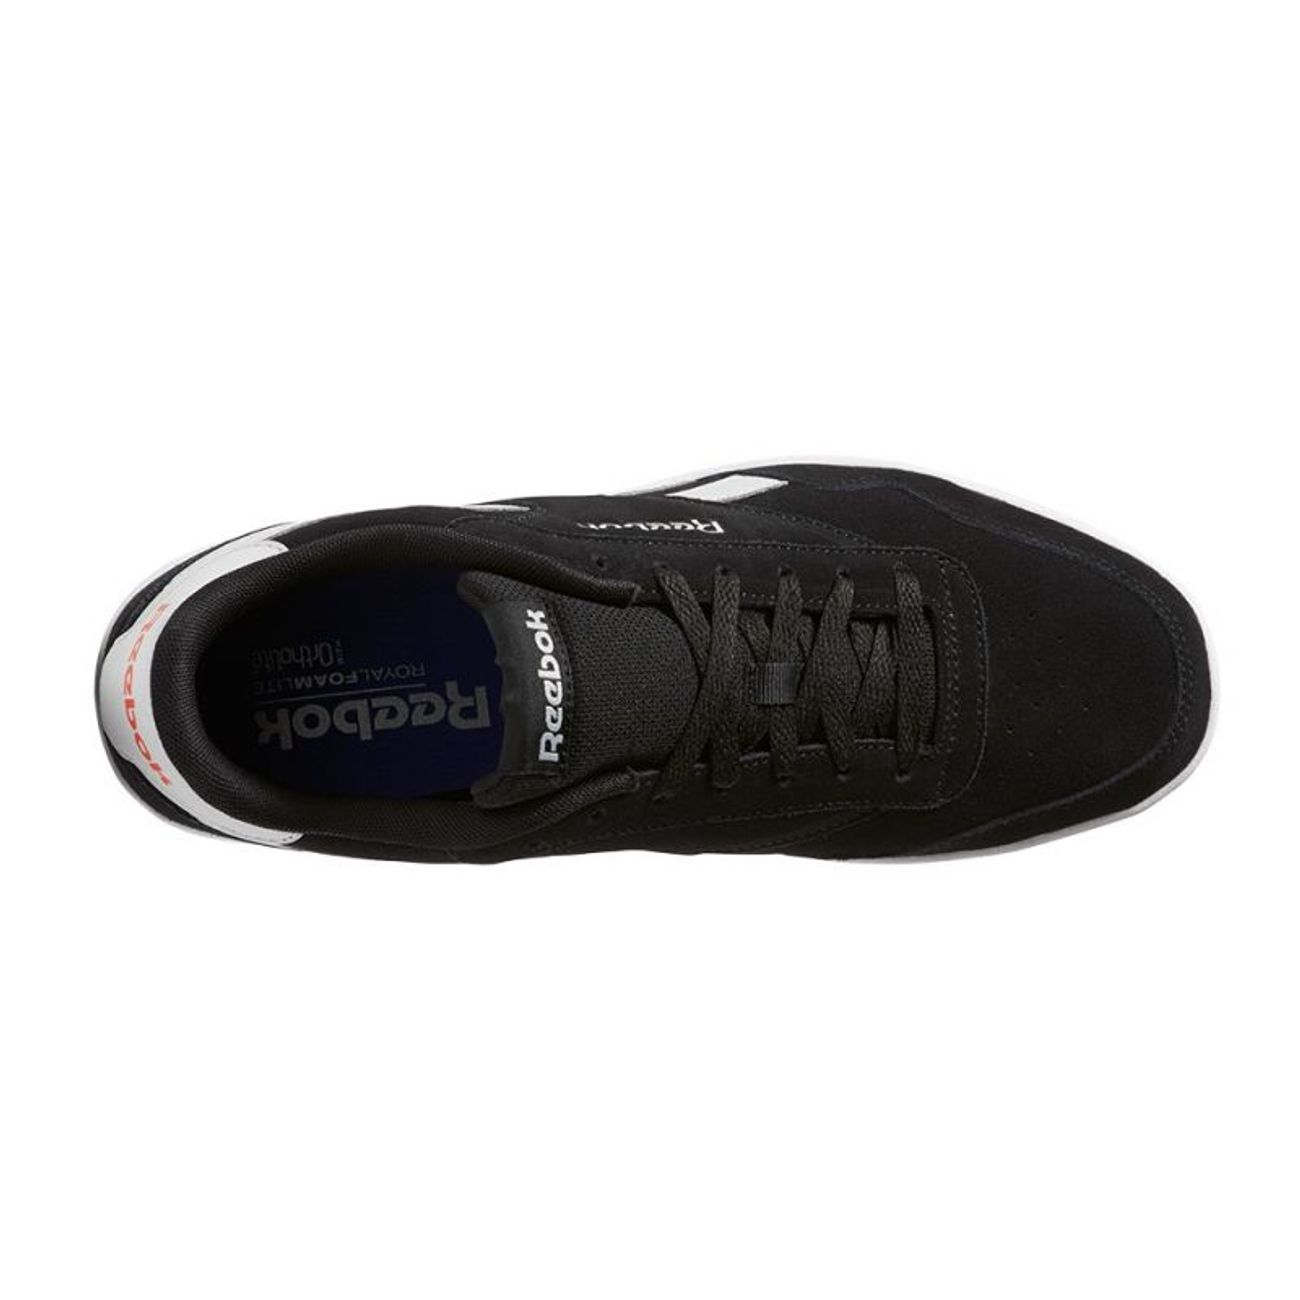 Cn8650 T Blanco Negro Adulte Royal Tennis Reebok Techque J3T1lKcuF5